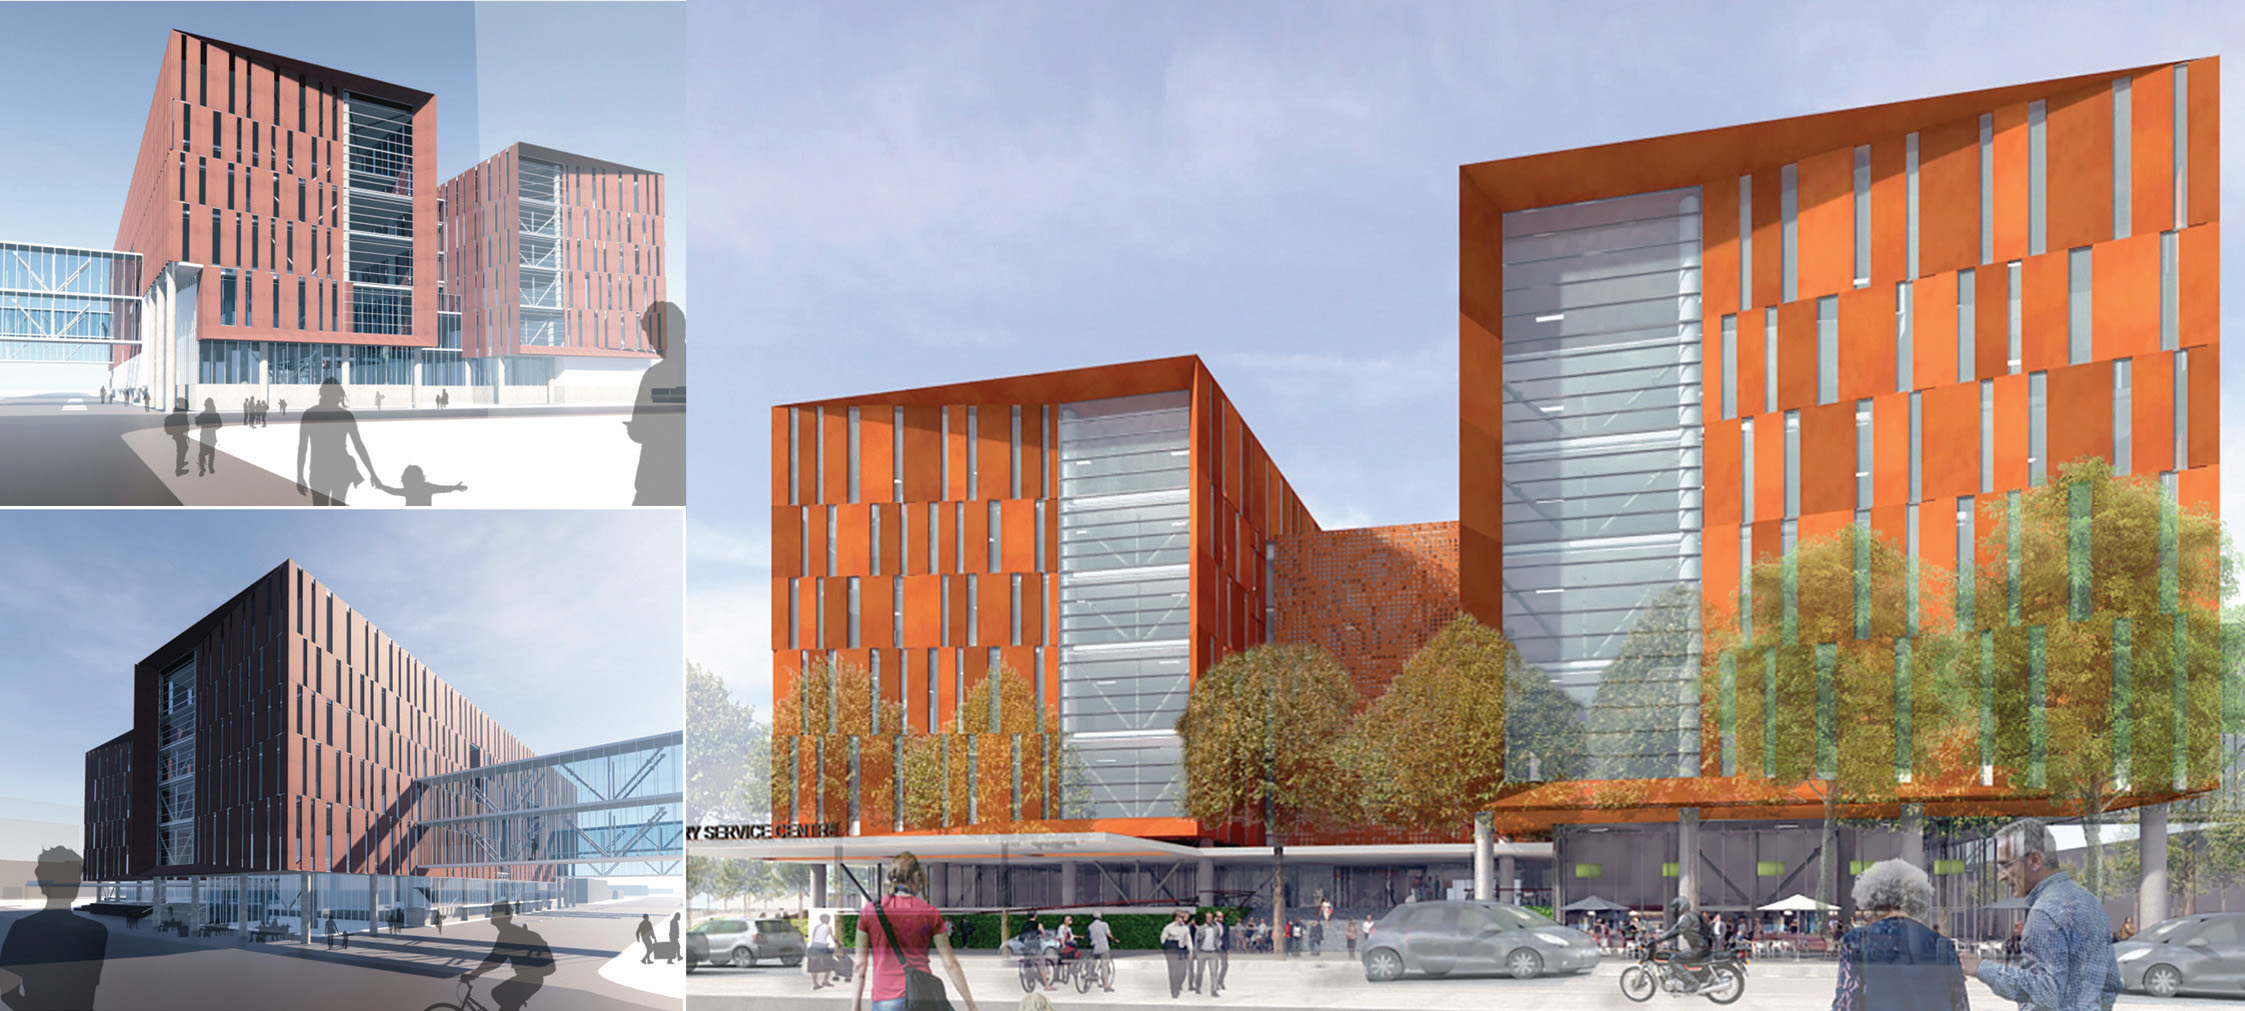 An artist's impression of a possible design for the new Dunedin Hospital outpatient and day...